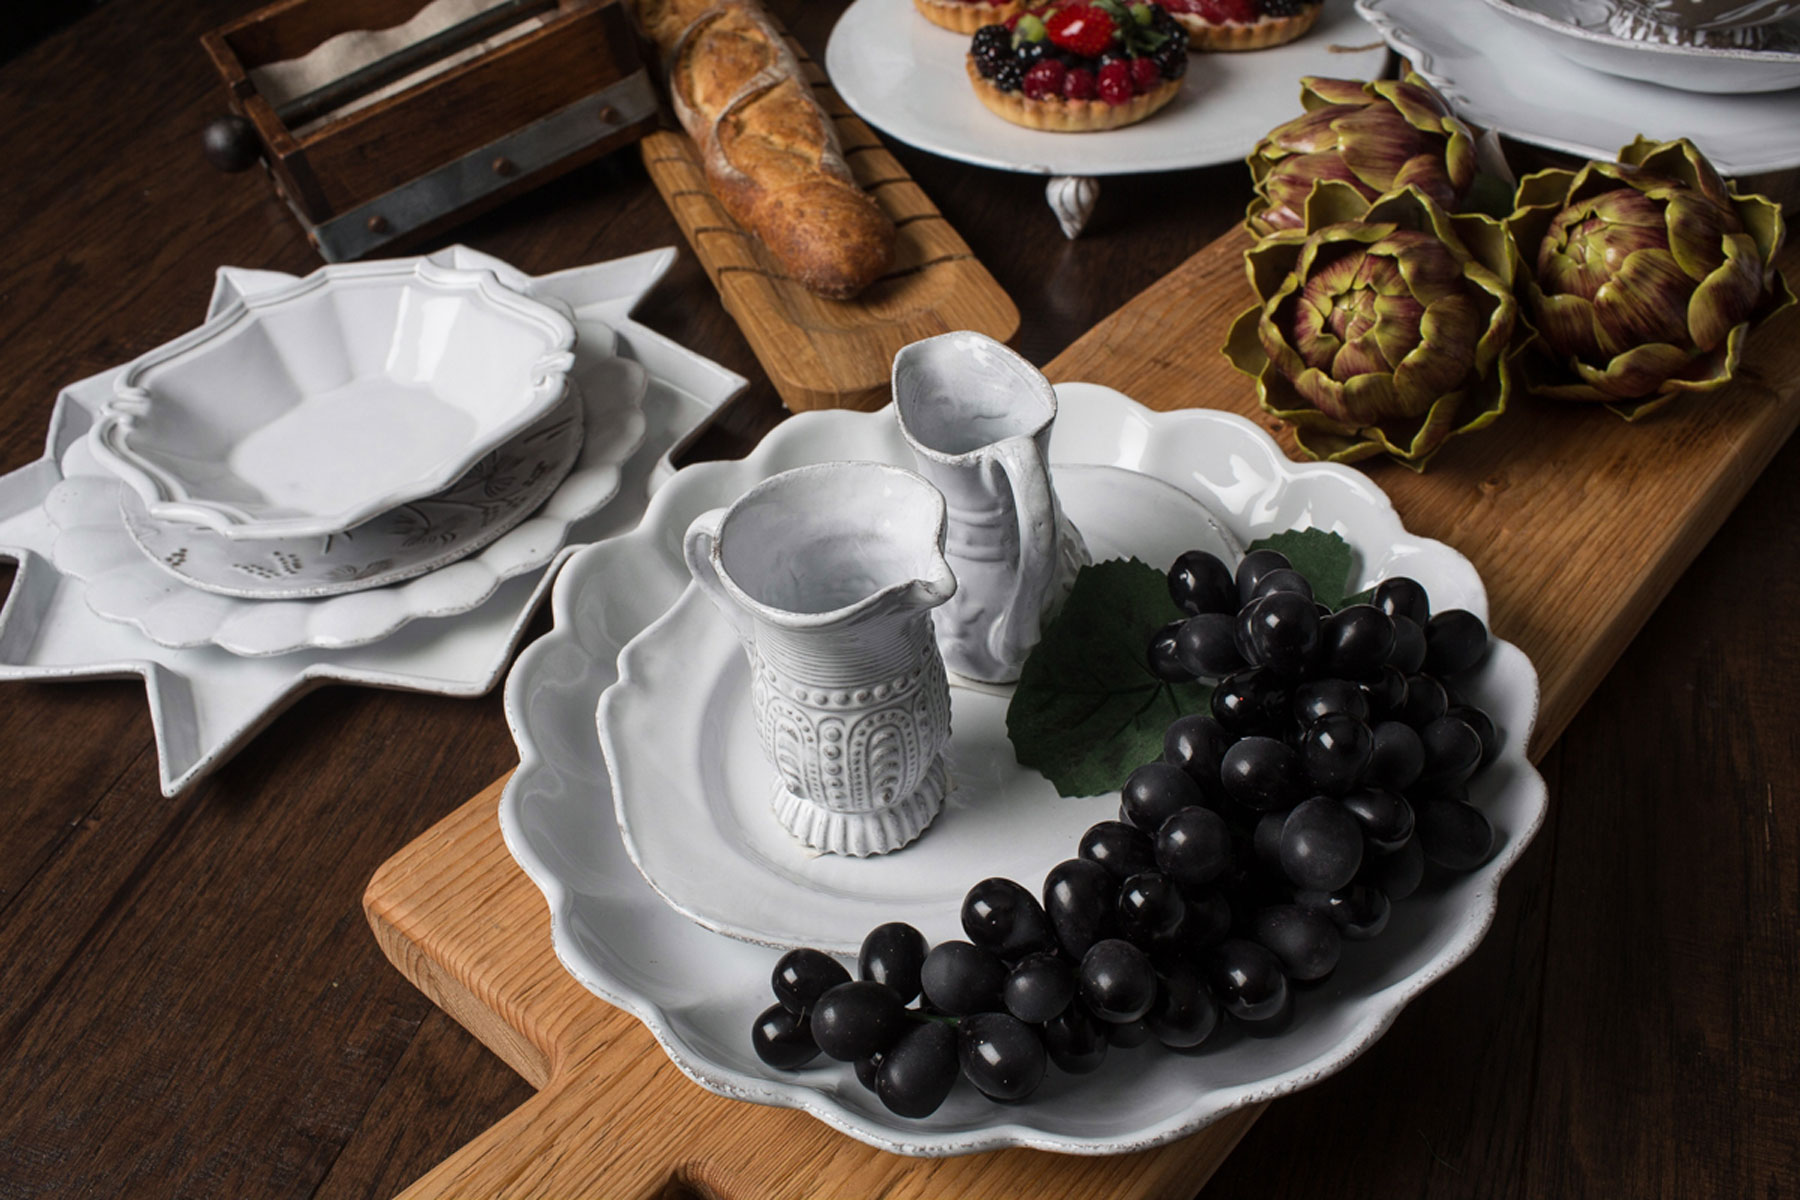 astier de villatte handcrafted french dinnerware. Black Bedroom Furniture Sets. Home Design Ideas